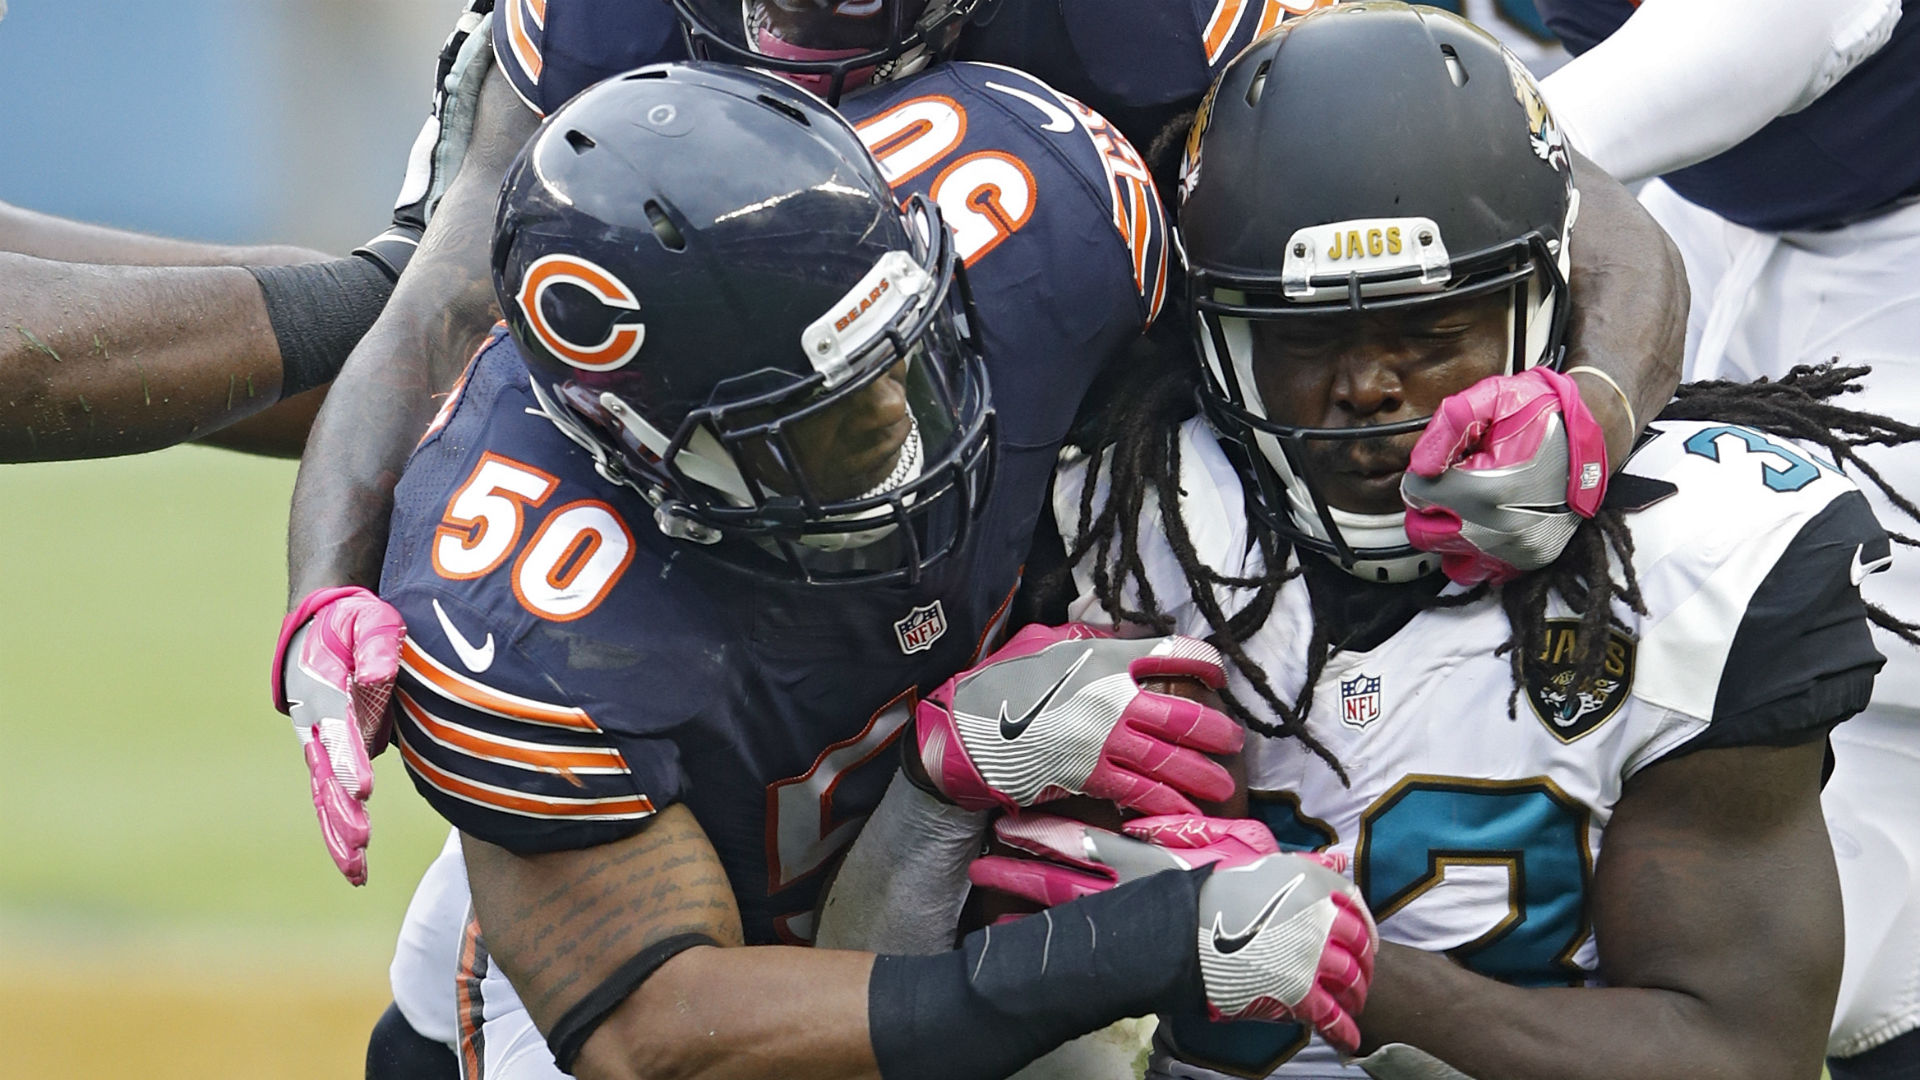 Bears linebacker performs Heimlich on fellow airline passenger